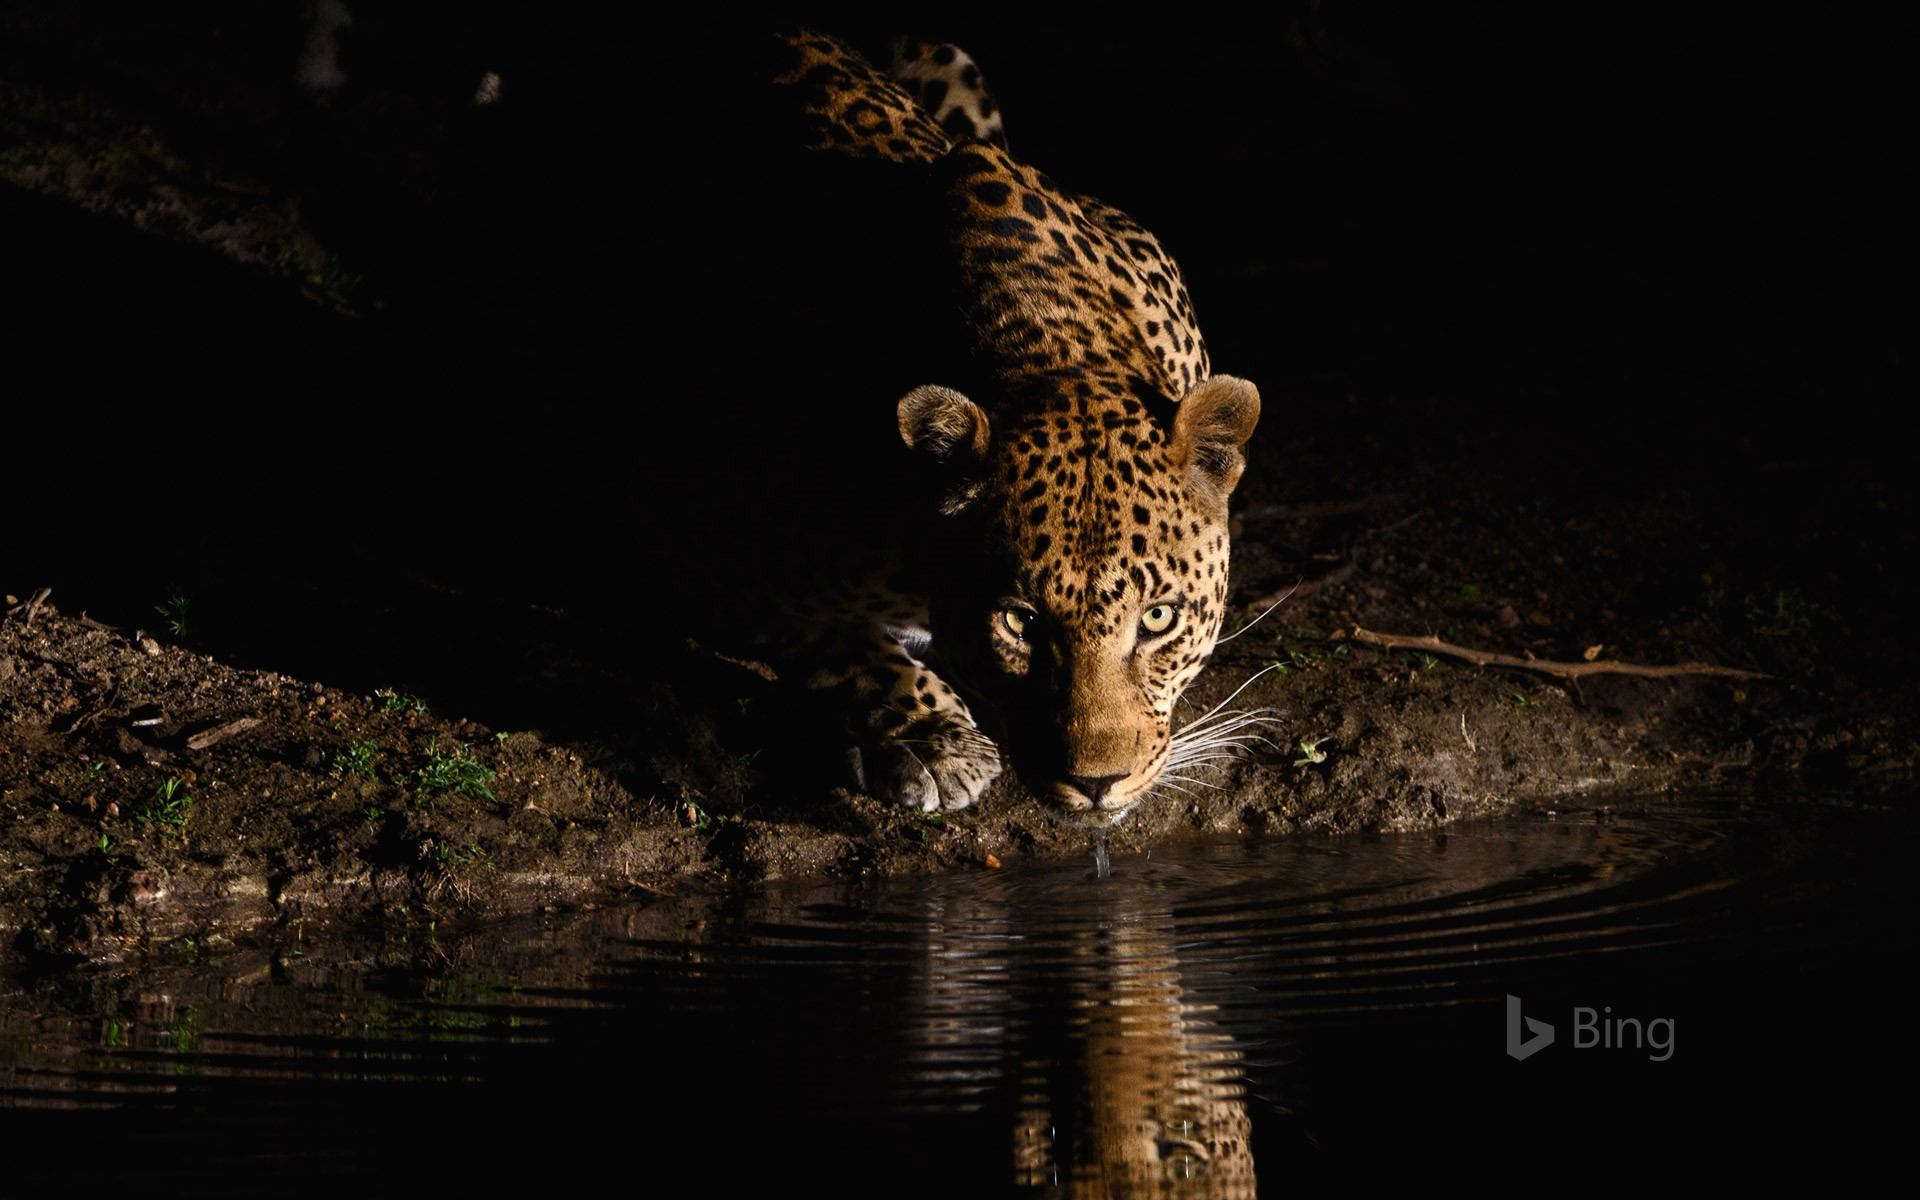 An African leopard in the Londolozi Private Game Reserve, South Africa